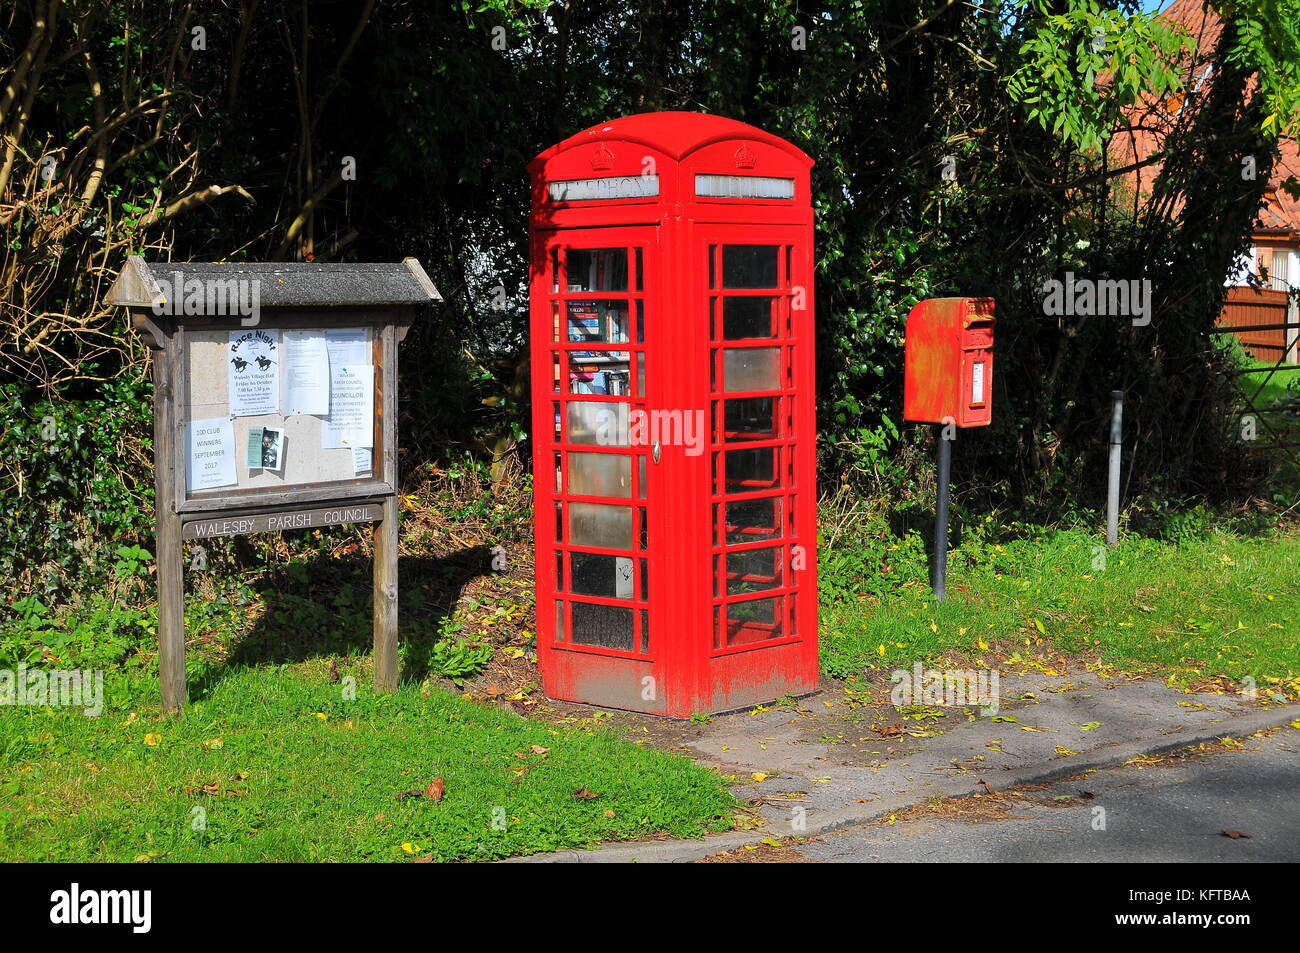 Old red telephone box - Stock Image